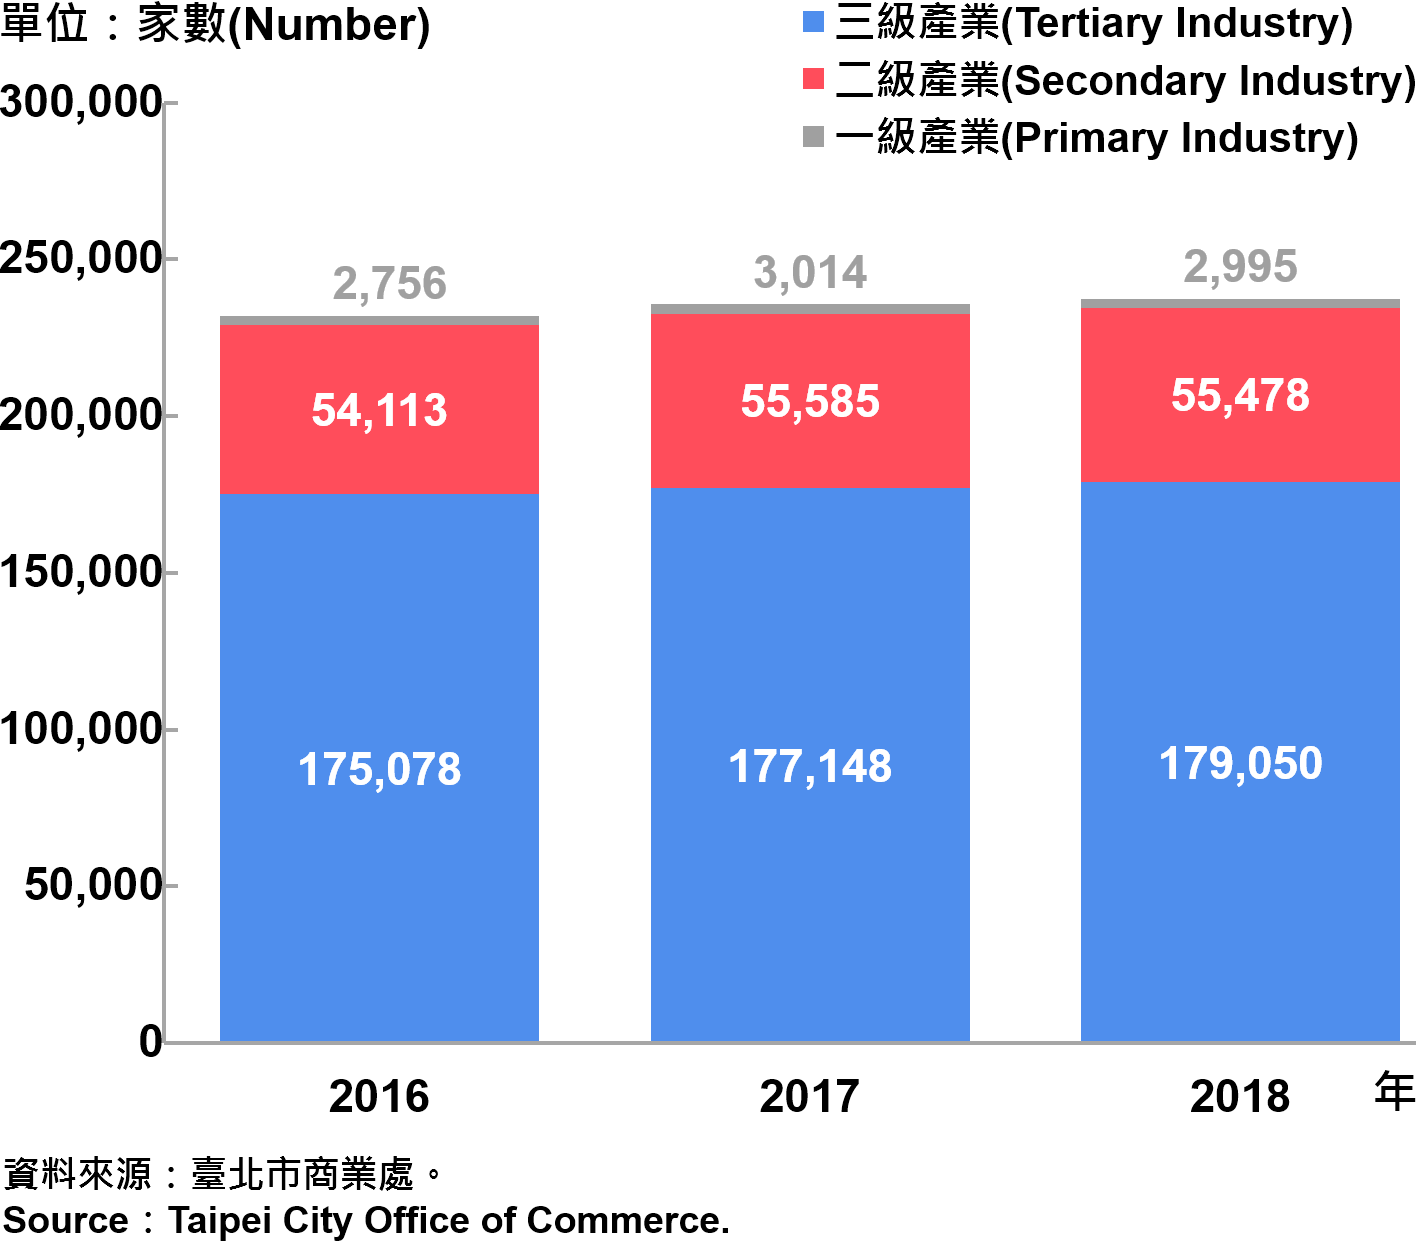 臺北市一二三級產業登記家數—2018 Number of Primary , Secondary and Tertiary Industry in Taipei City—2018